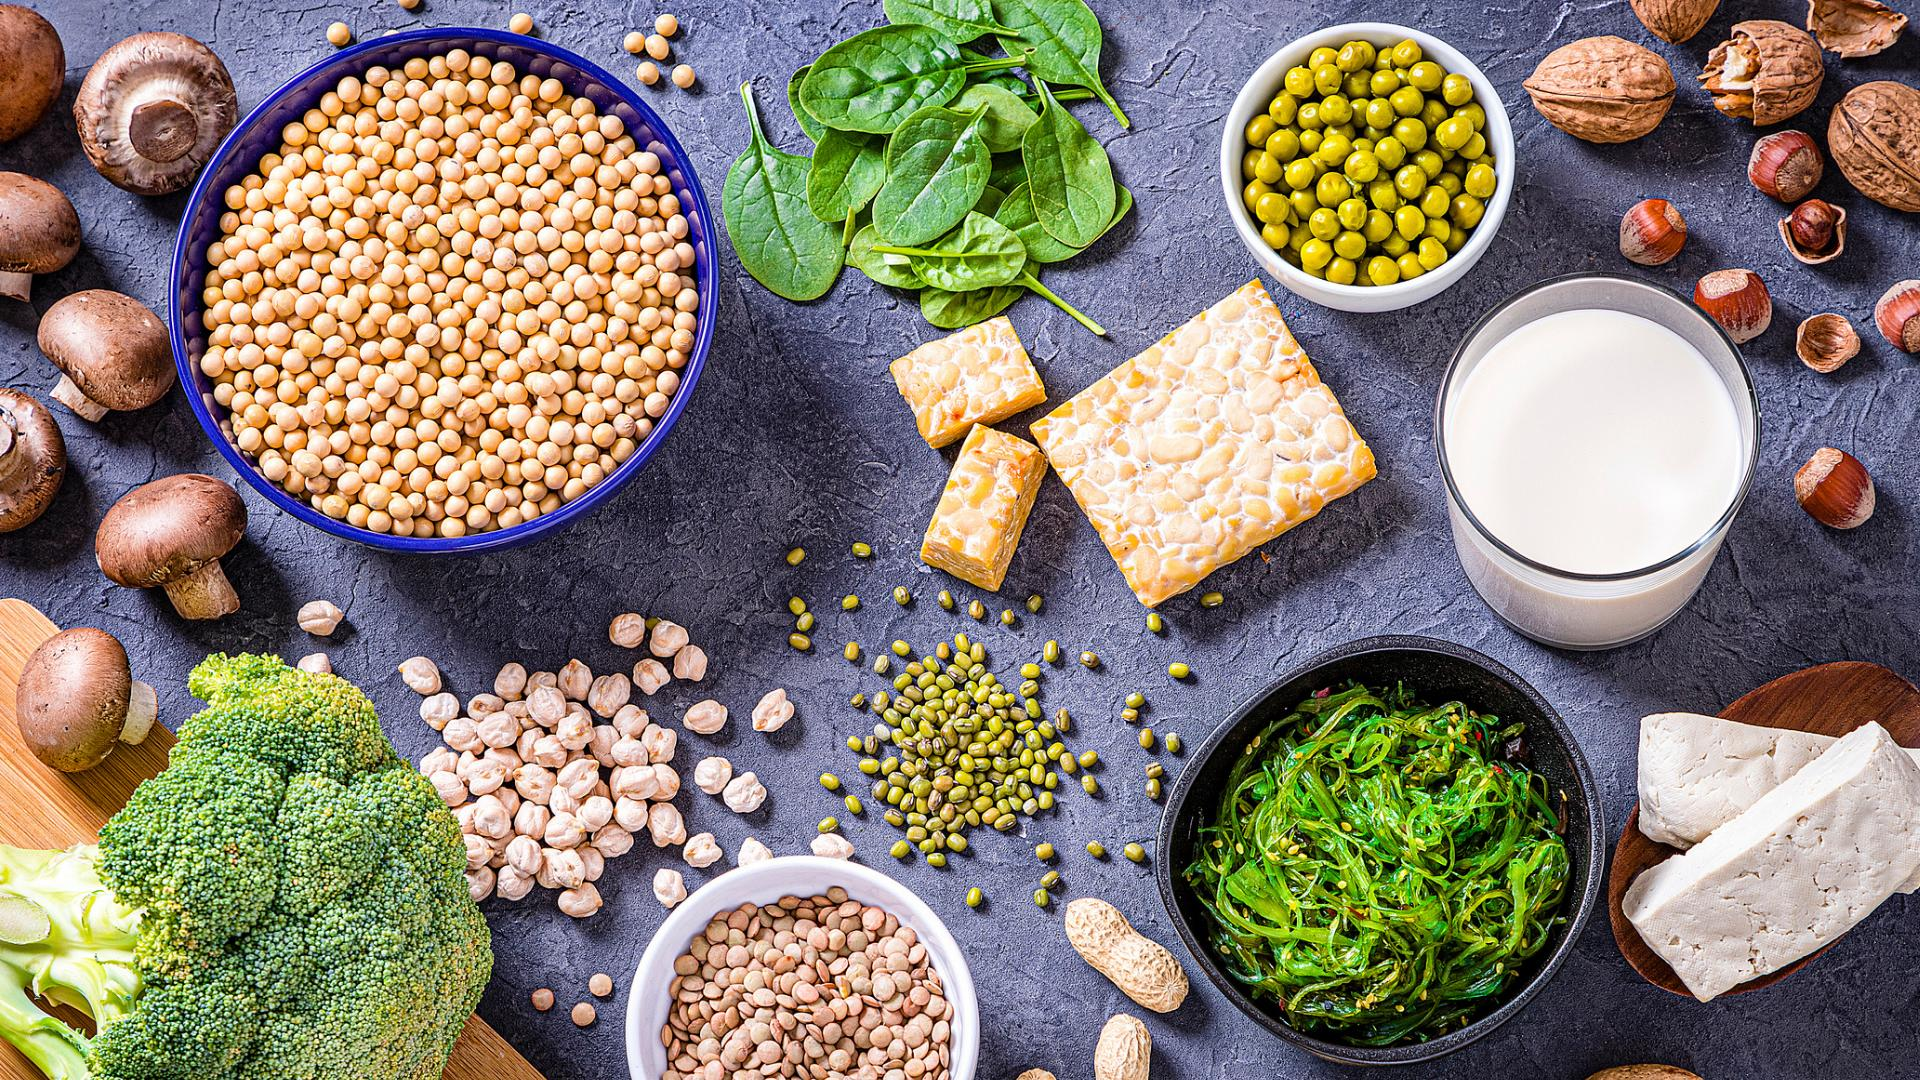 Foods to prevent joint pain